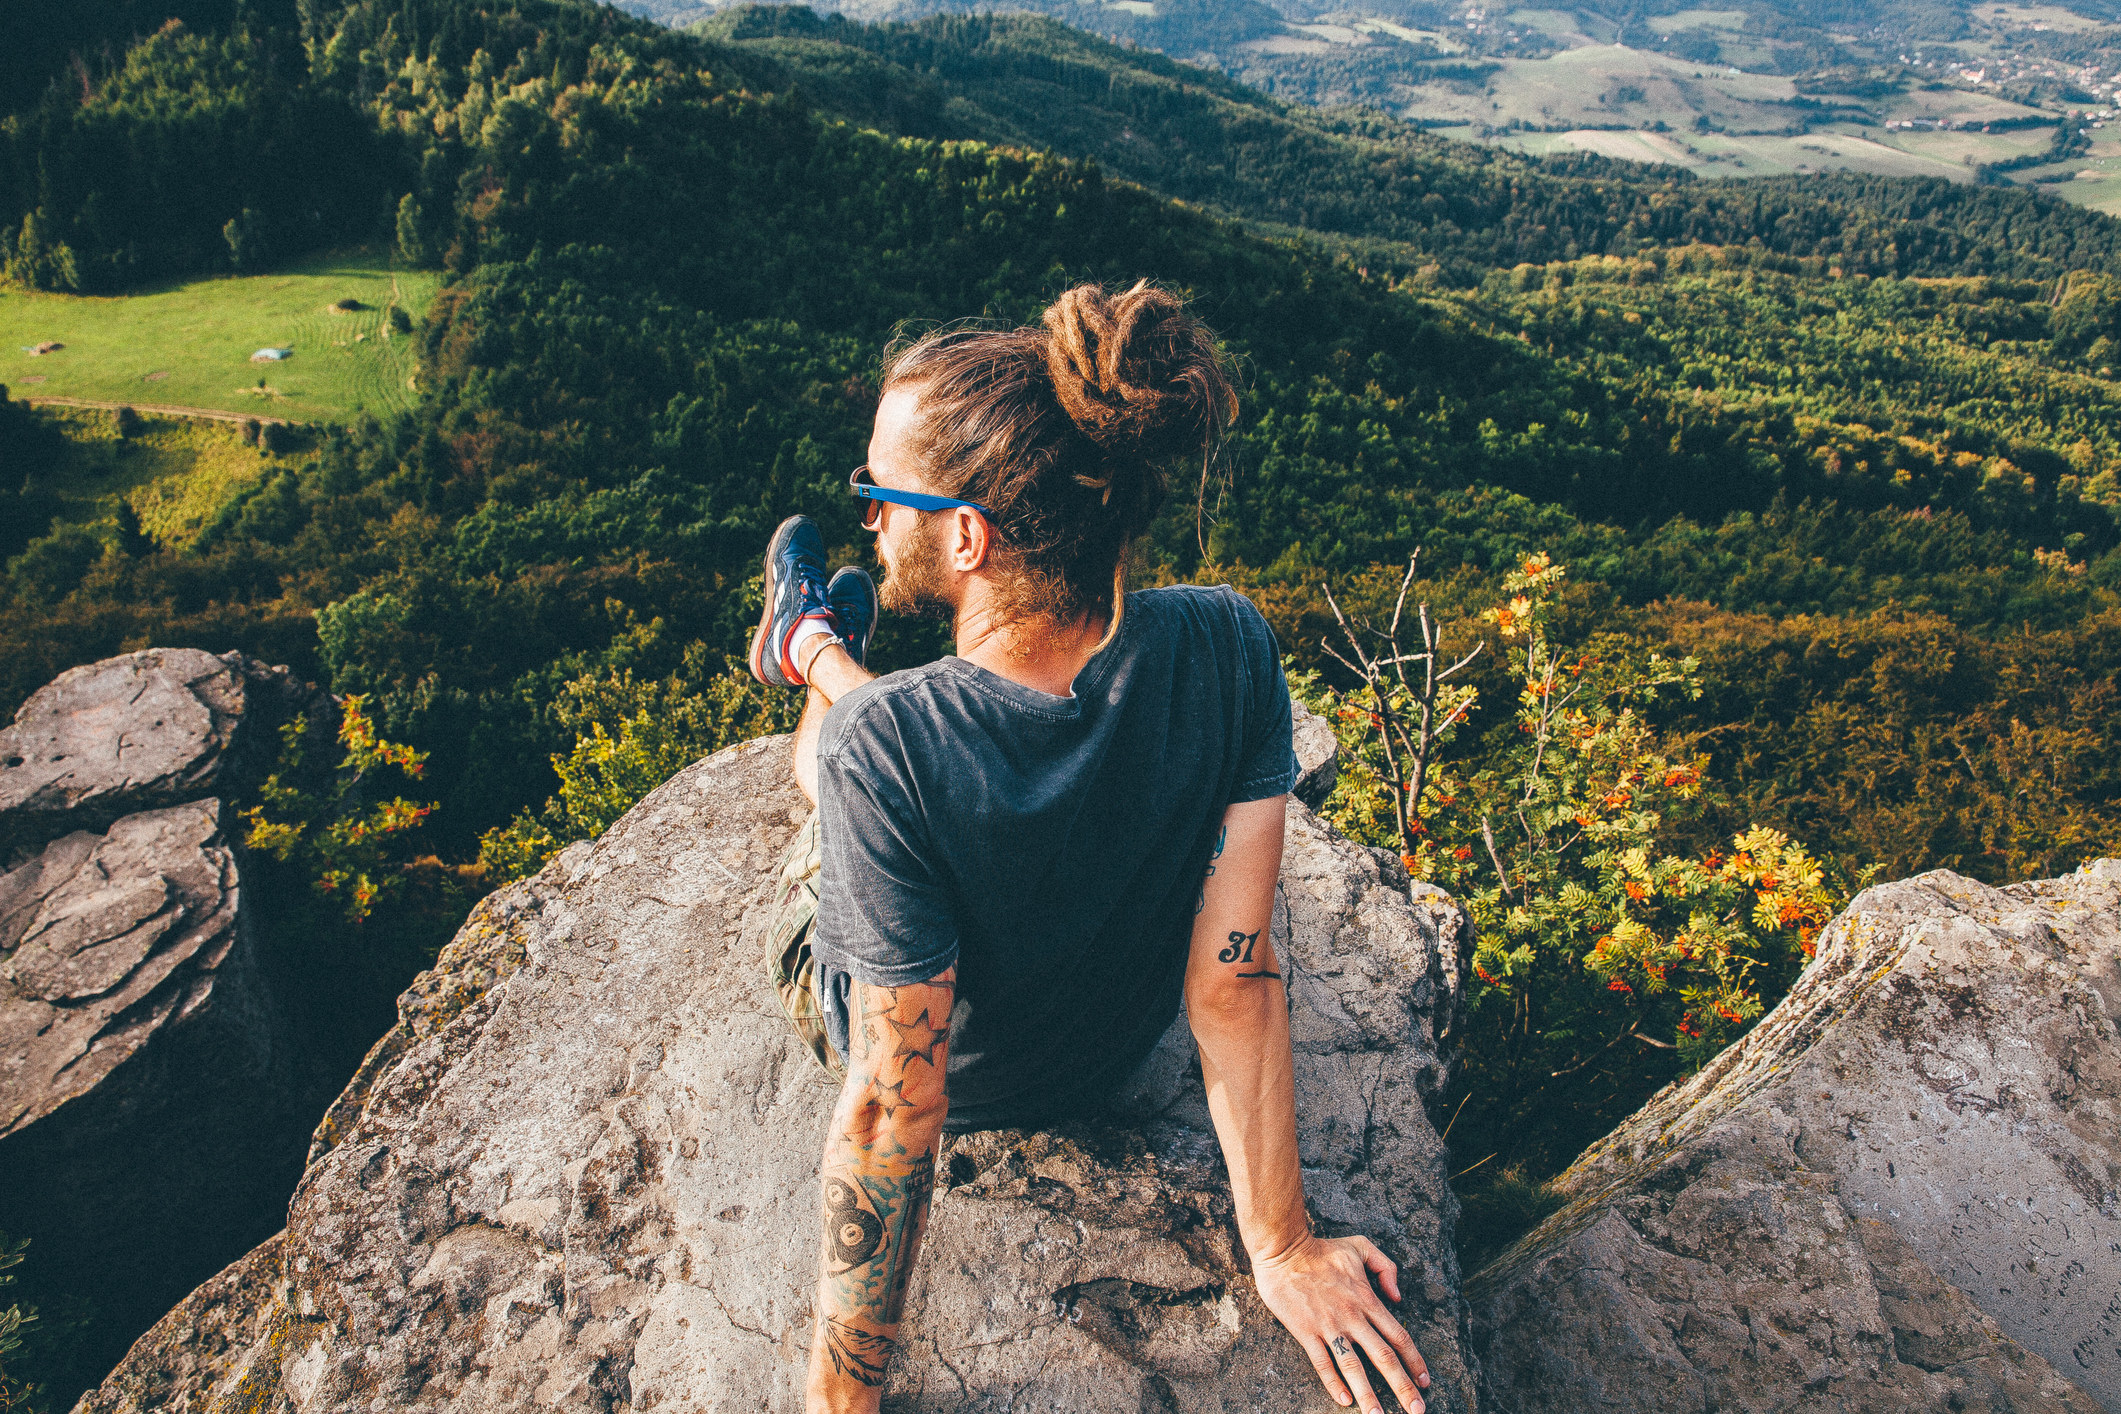 a man with long hair looking out at a nature view